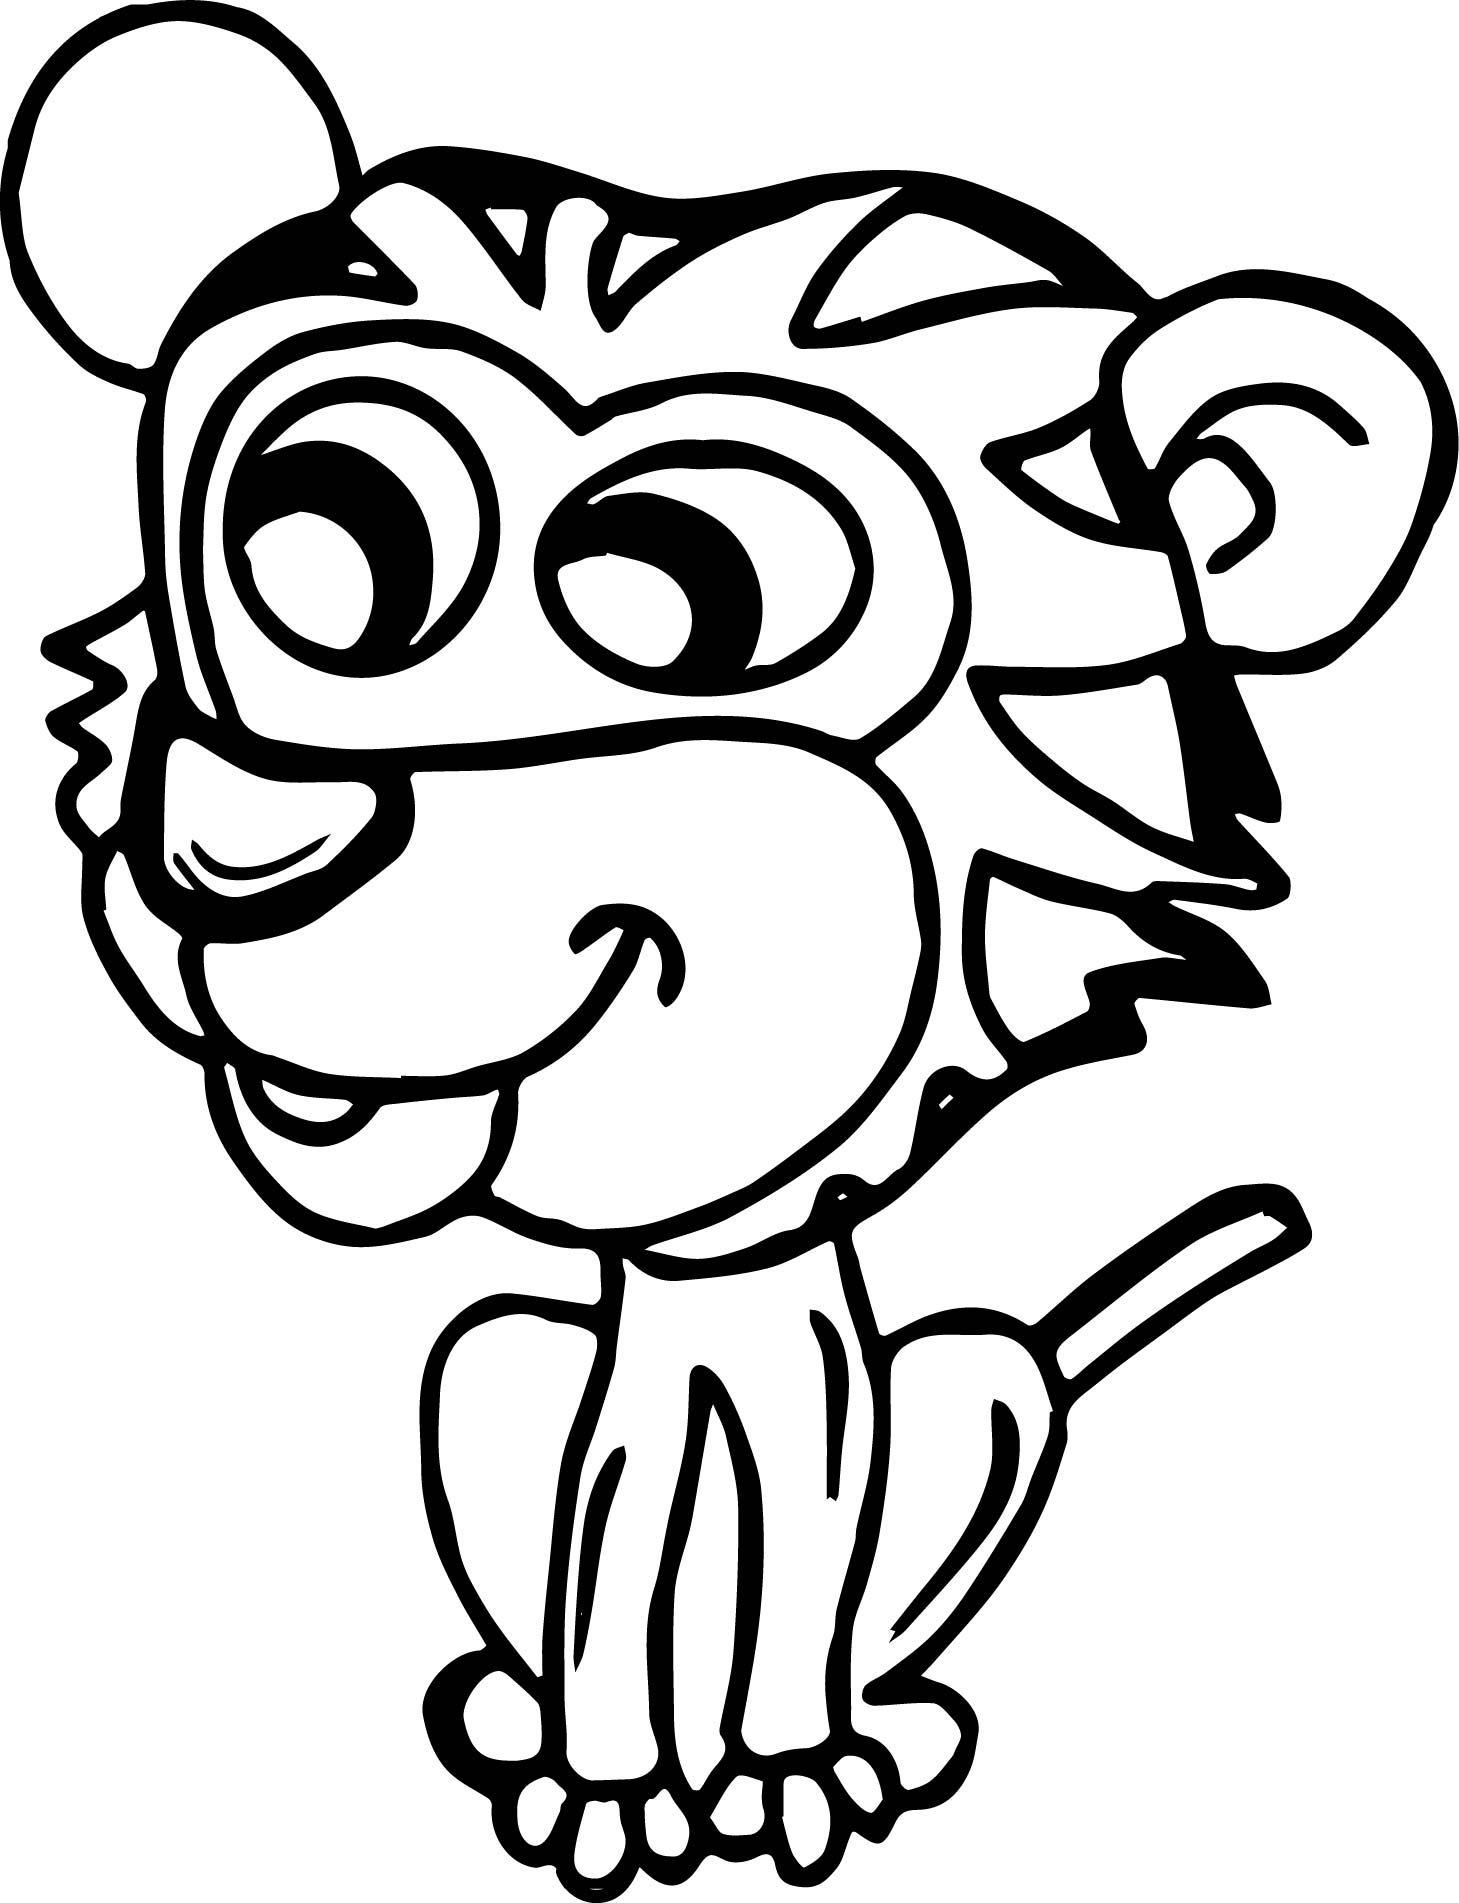 cool tiger coloring pages cool tiger start coloring page coloring pages tiger cool pages coloring